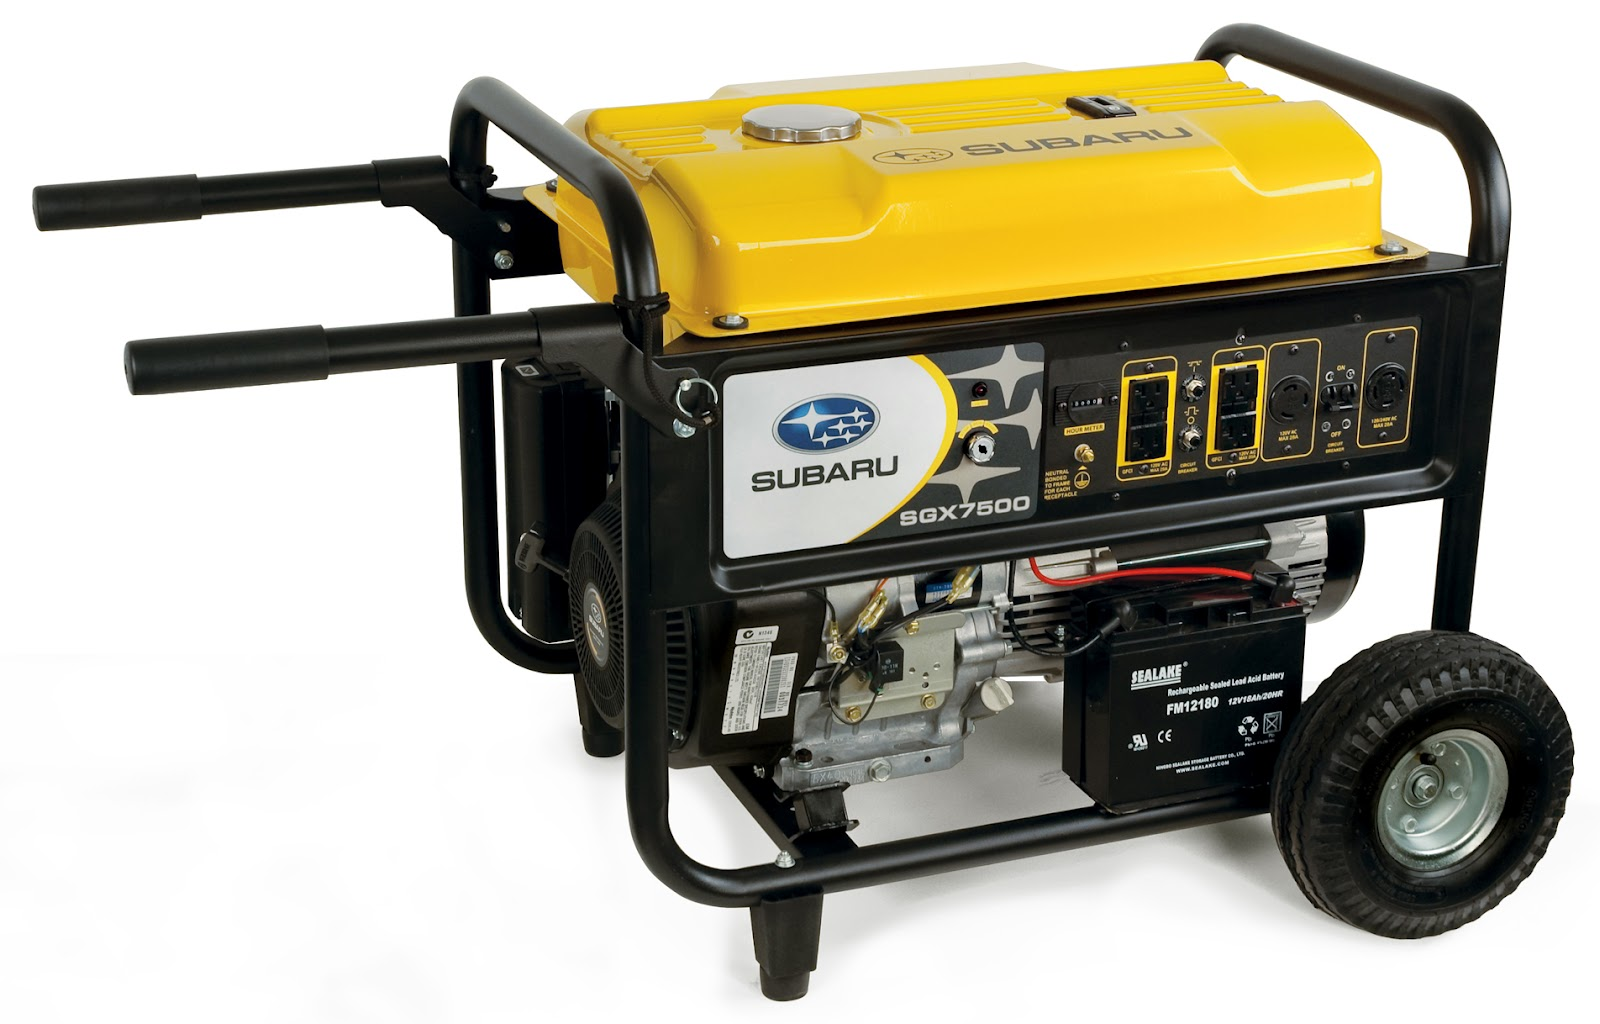 Imperial services subaru generators - Choosing a gasoline powered generator ...